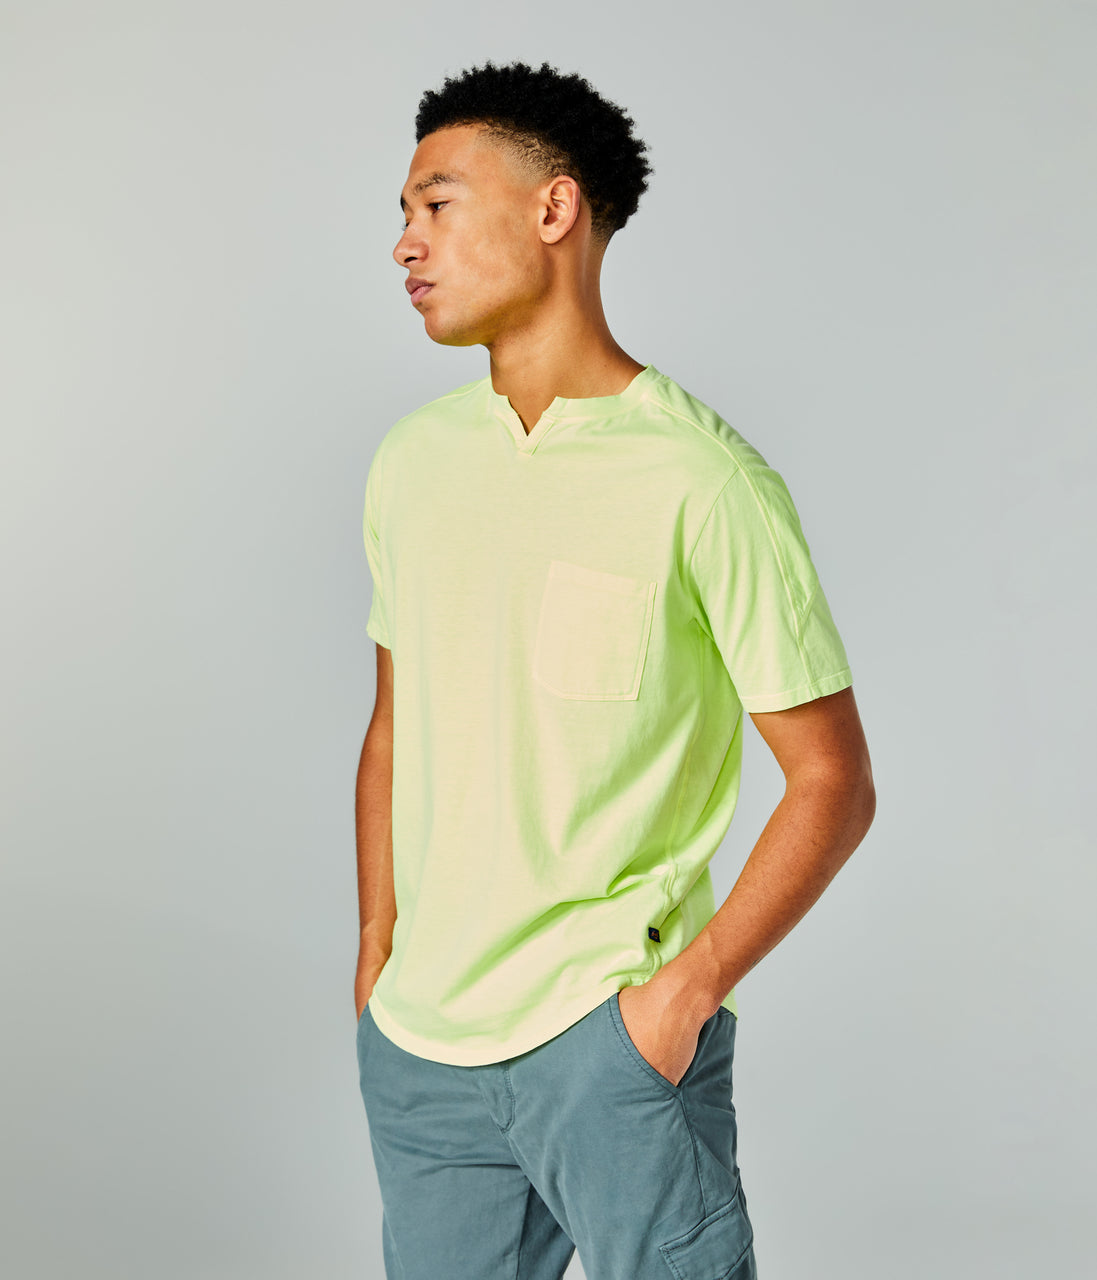 Premium Cotton Jersey Notch Neck Crew - Citron - Good Man Brand - Premium Cotton Jersey Notch Neck Crew - Citron